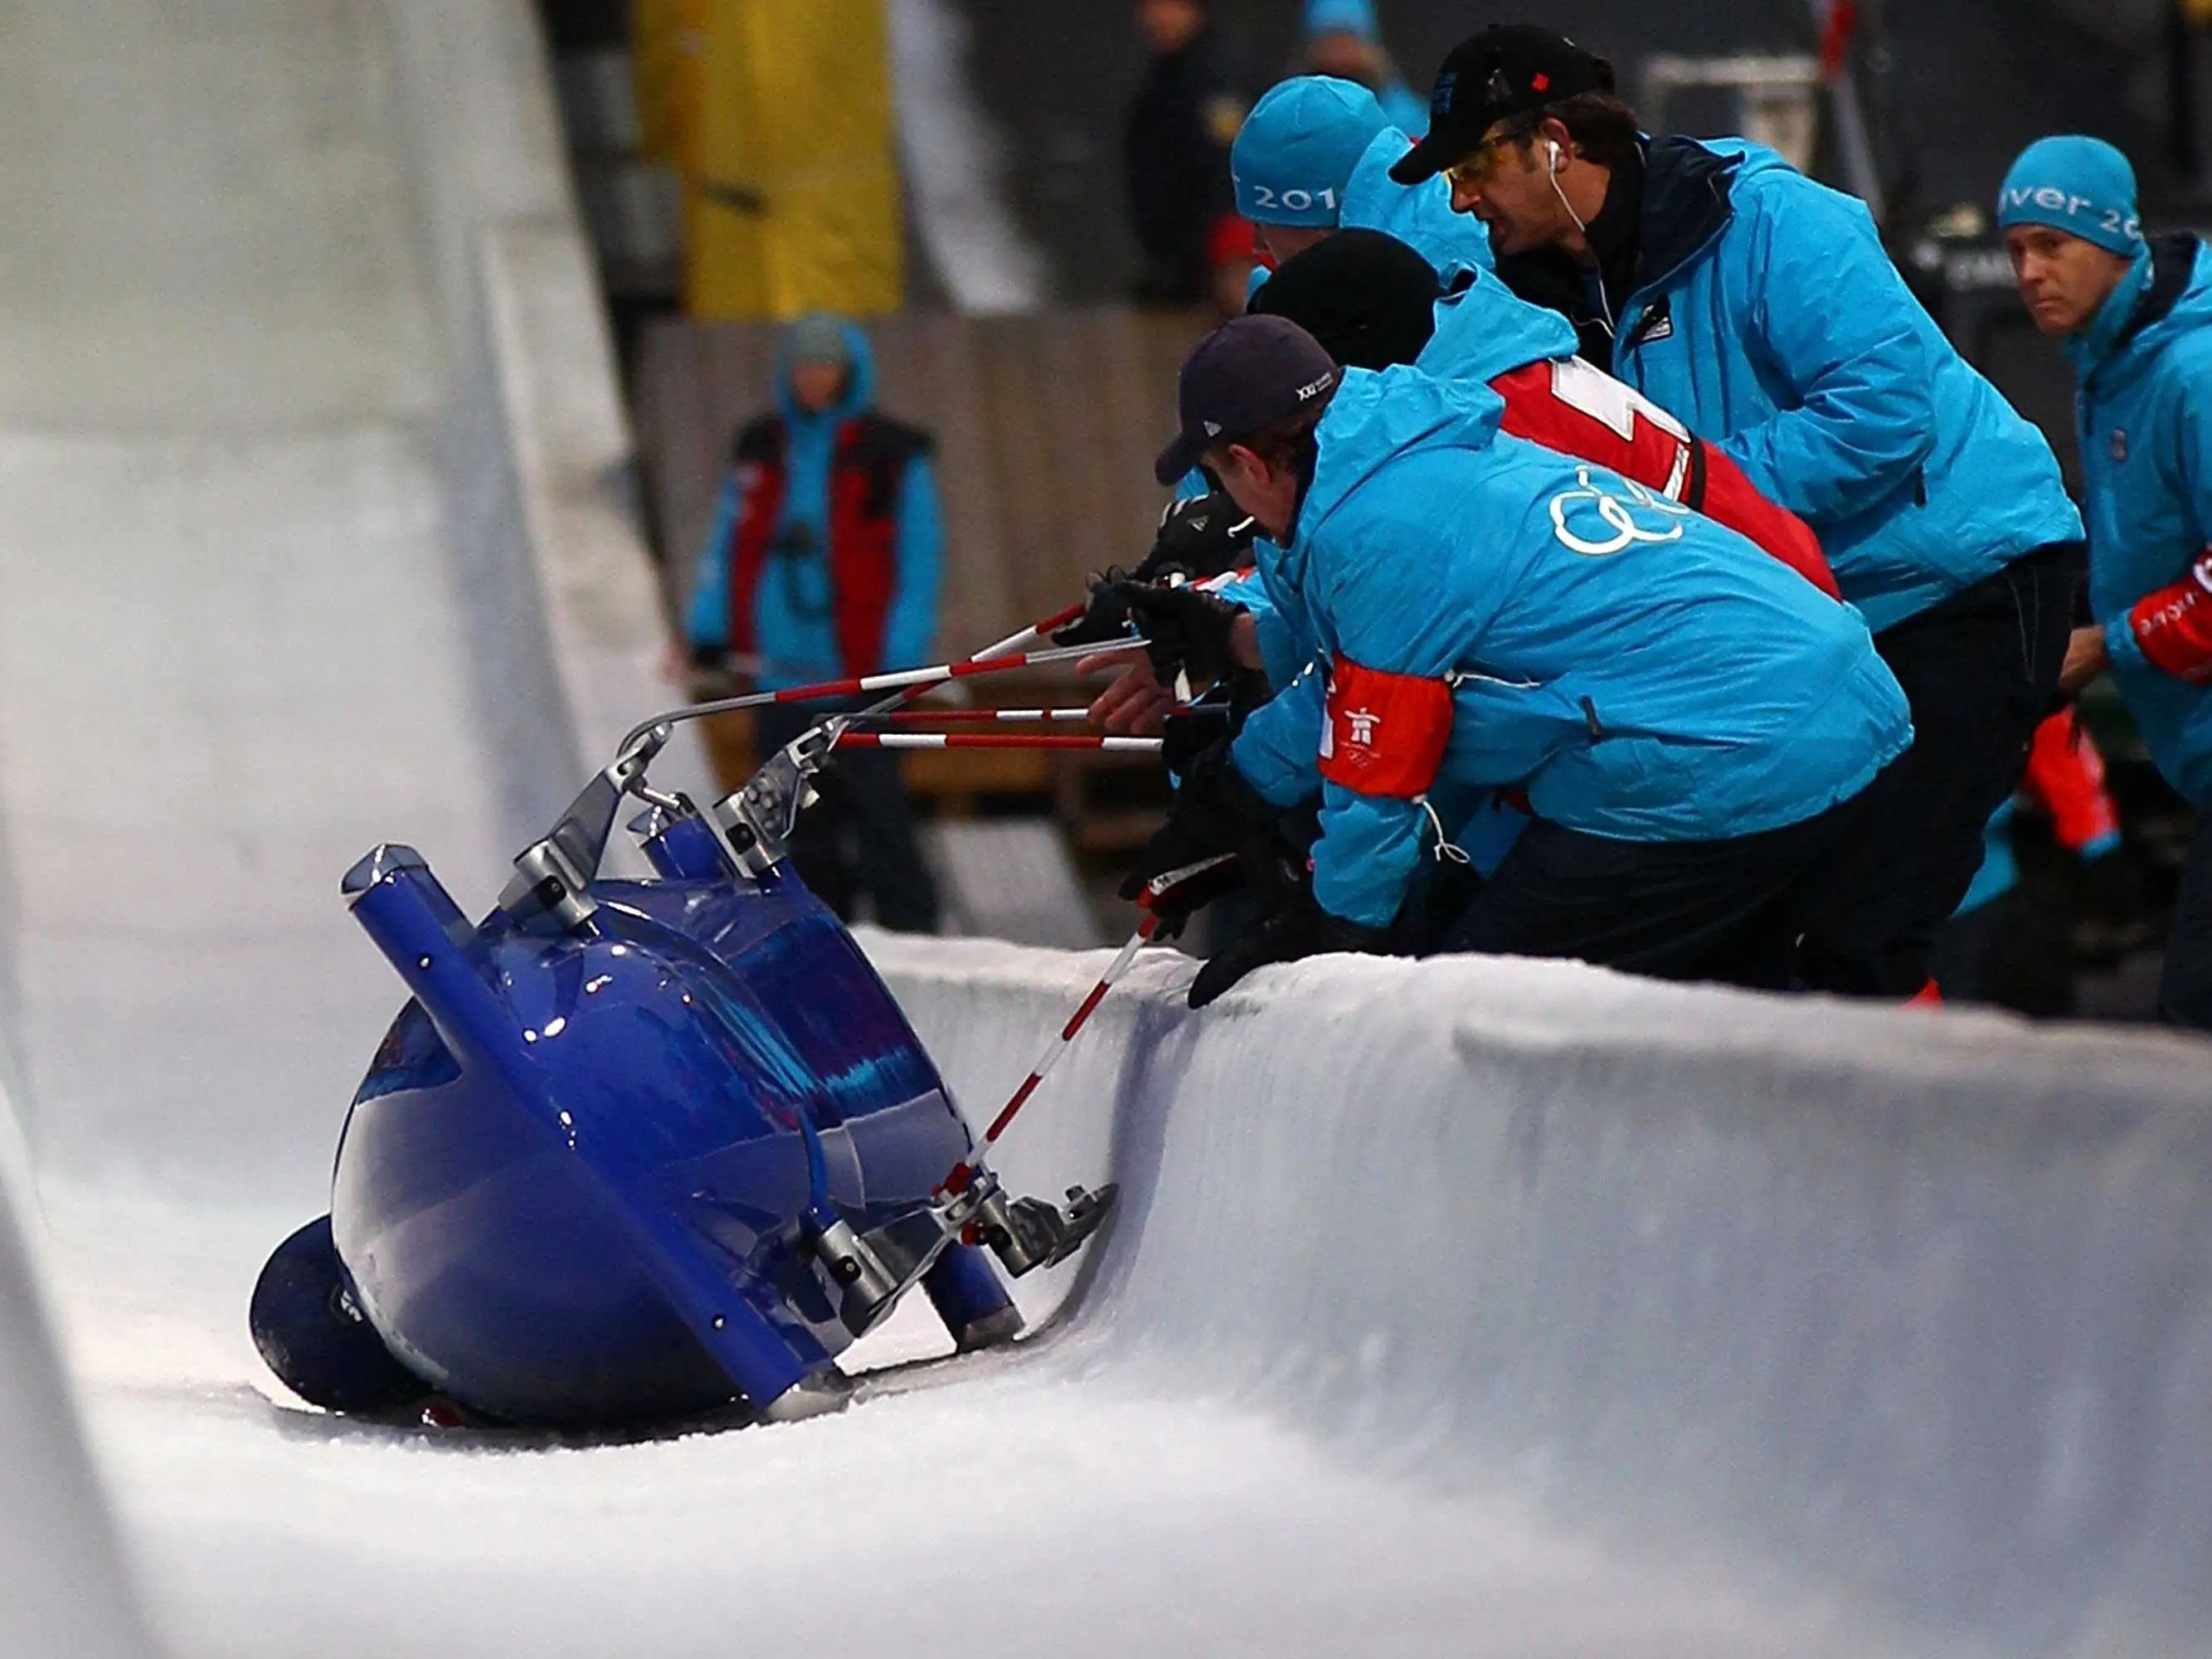 12 Examples Of Just How Dangerous The Winter Olympics Can